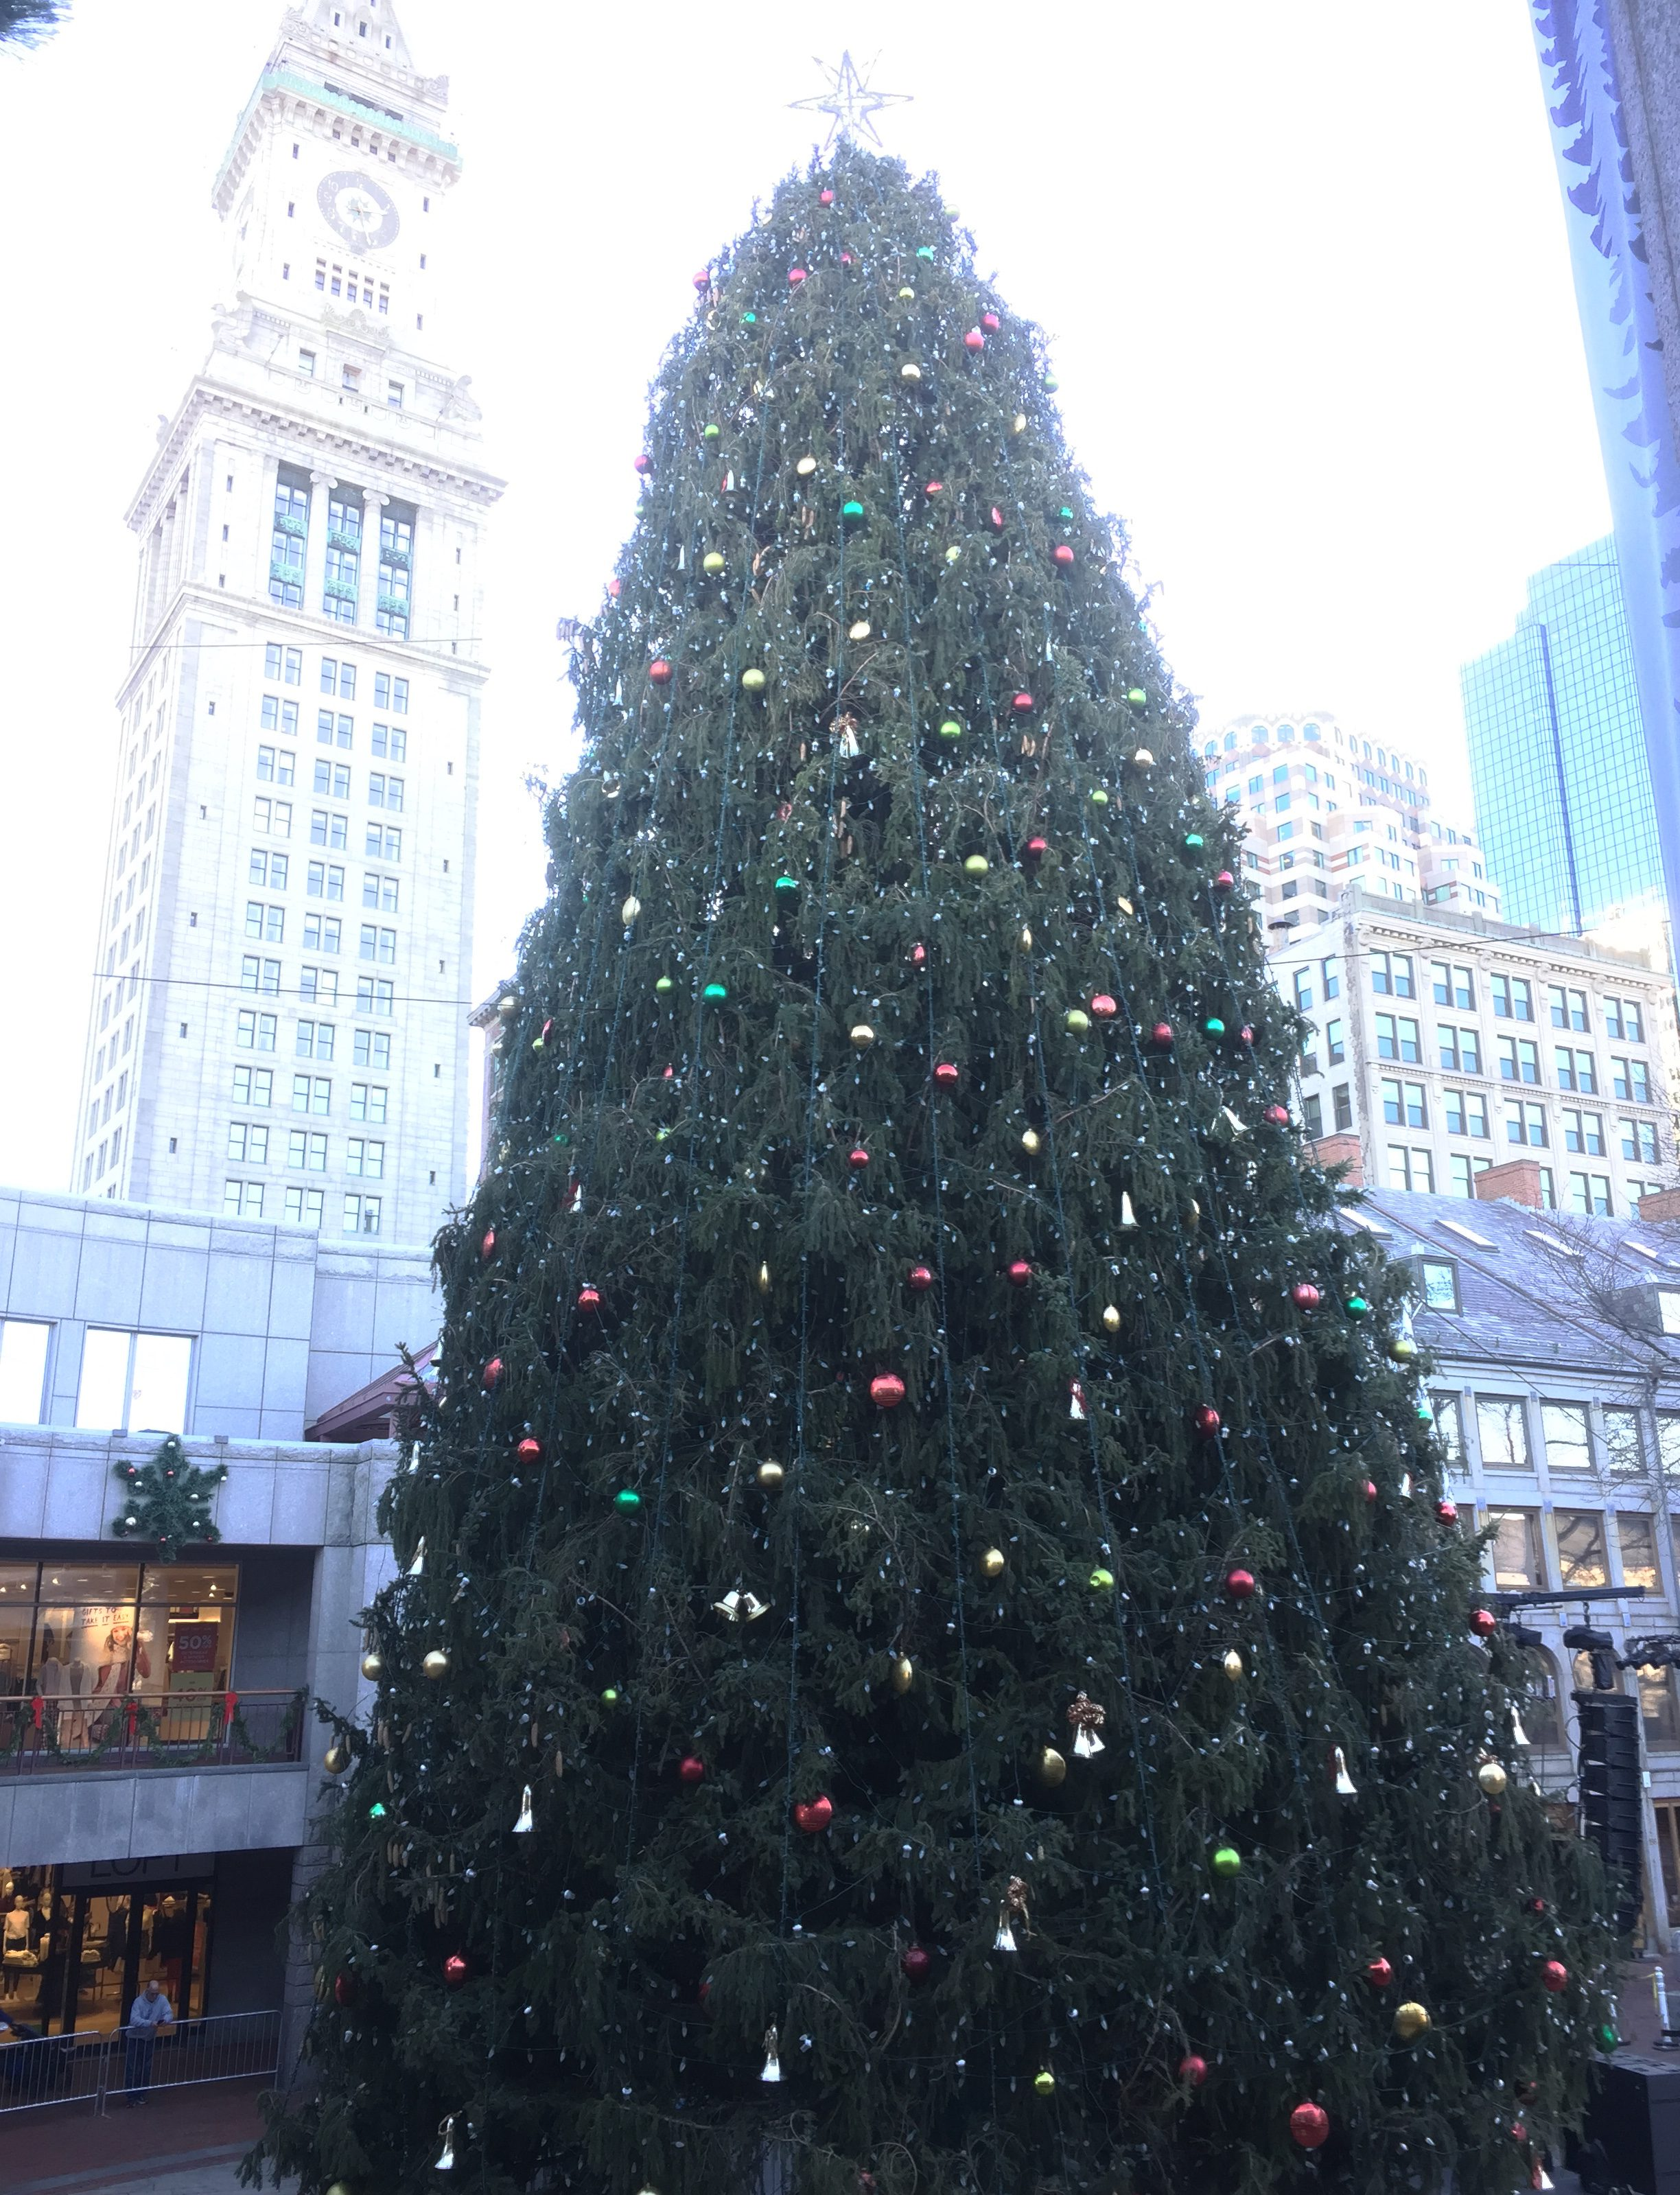 Boston Faneuil Hall Christmas tree